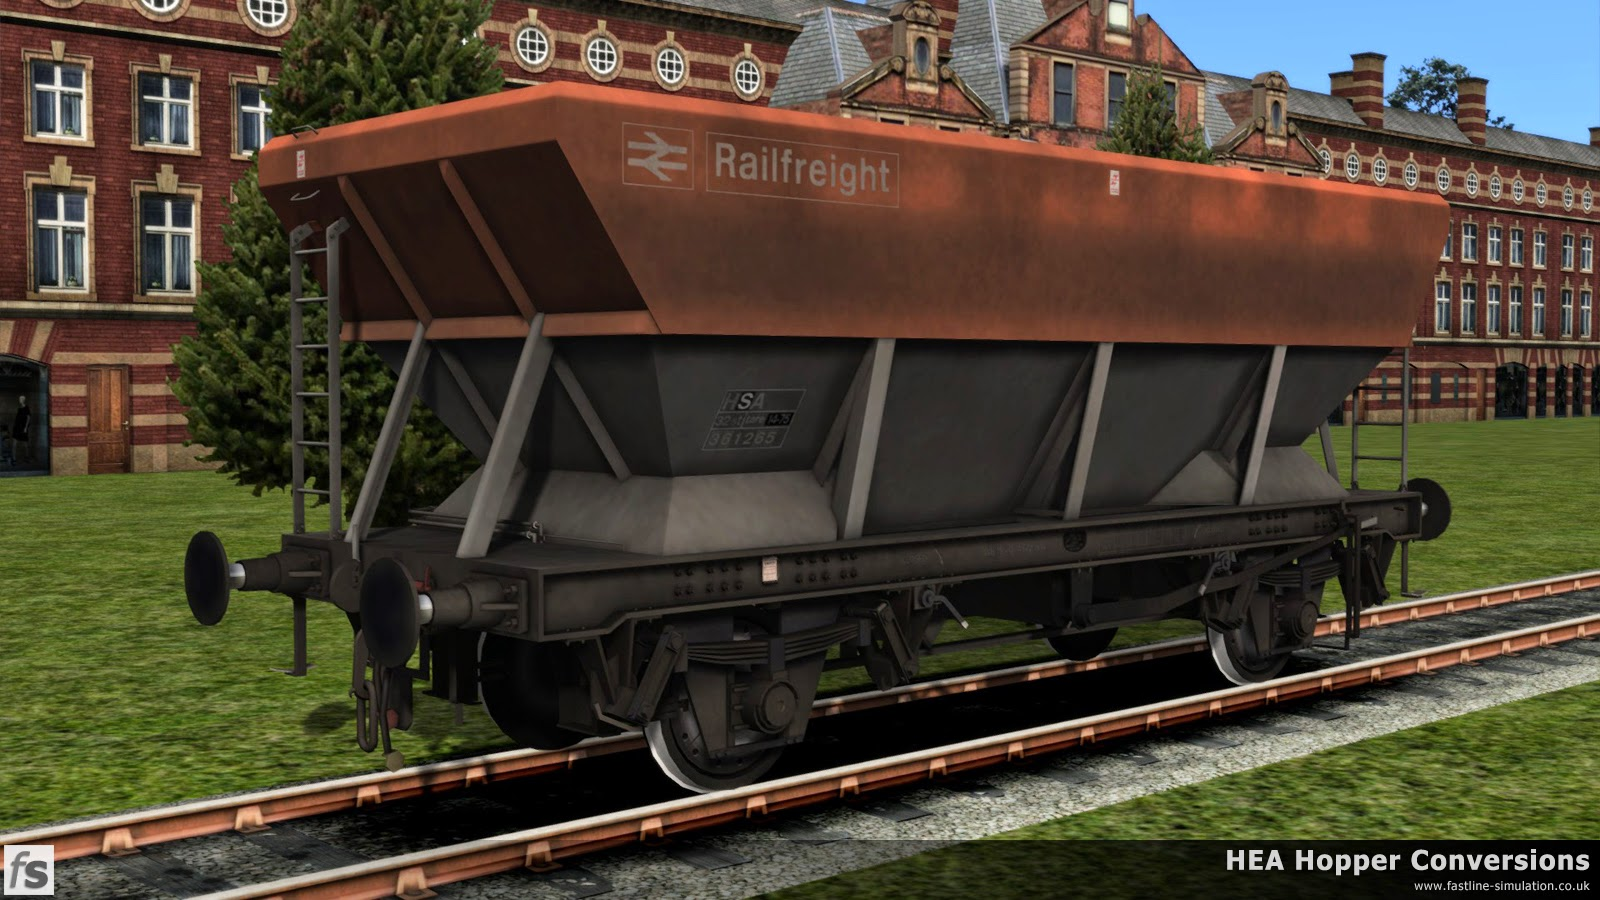 Fastline Simulation - HEA Conversions: One of the later build of HEA hoppers with an offset ladder and wearing grubby Railfreight flame red and grey livery has been converted into an HSA scrap wagon. Judging by the increased tare weight that has been added at the same time as recoding, 'conversion' has involved filling the hopper bottoms with ballast to make a level loading area!